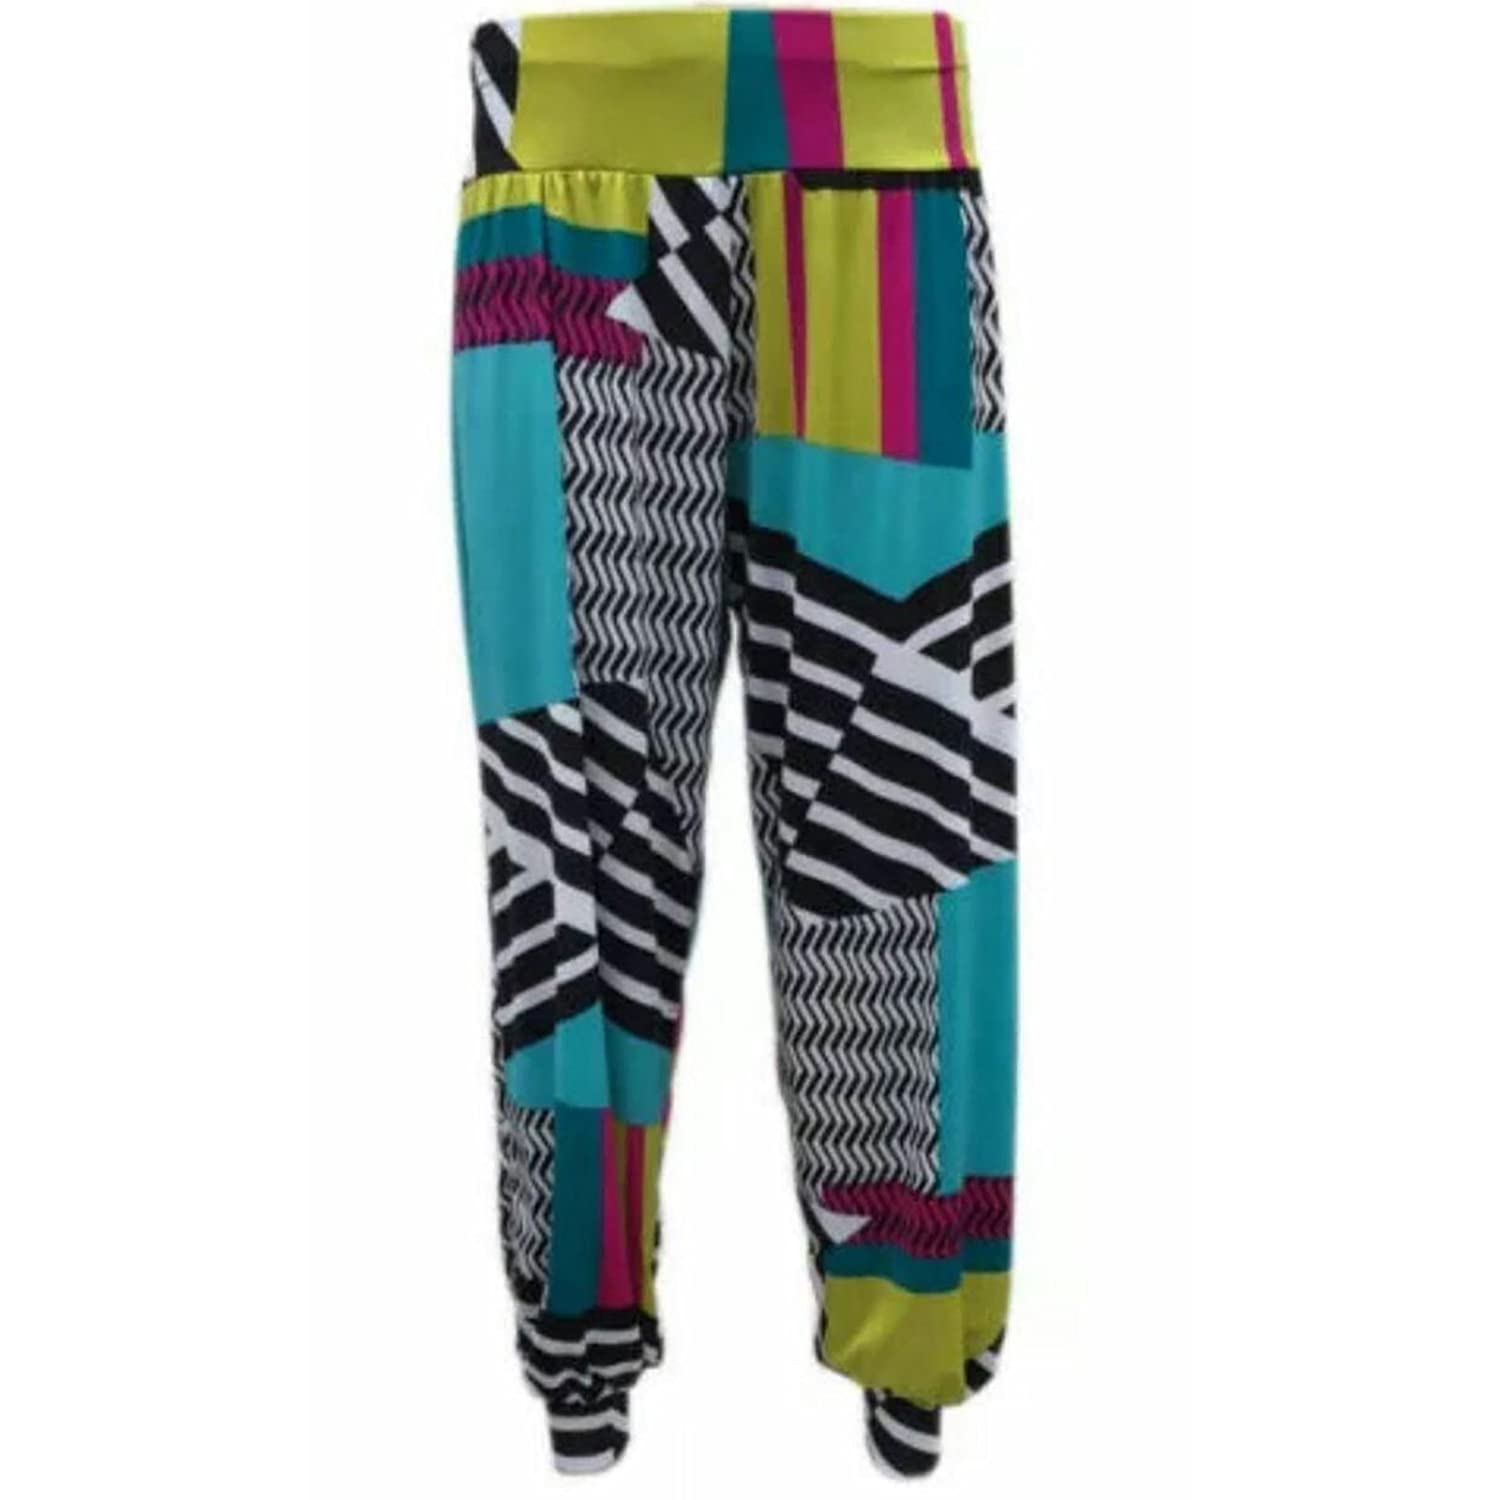 3cb77587cc4 (FF11) Ali Baba Printed Aladin Harem Pants Loose Baggy Trousers Plus Size   UK 8-26   Amazon.co.uk  Clothing